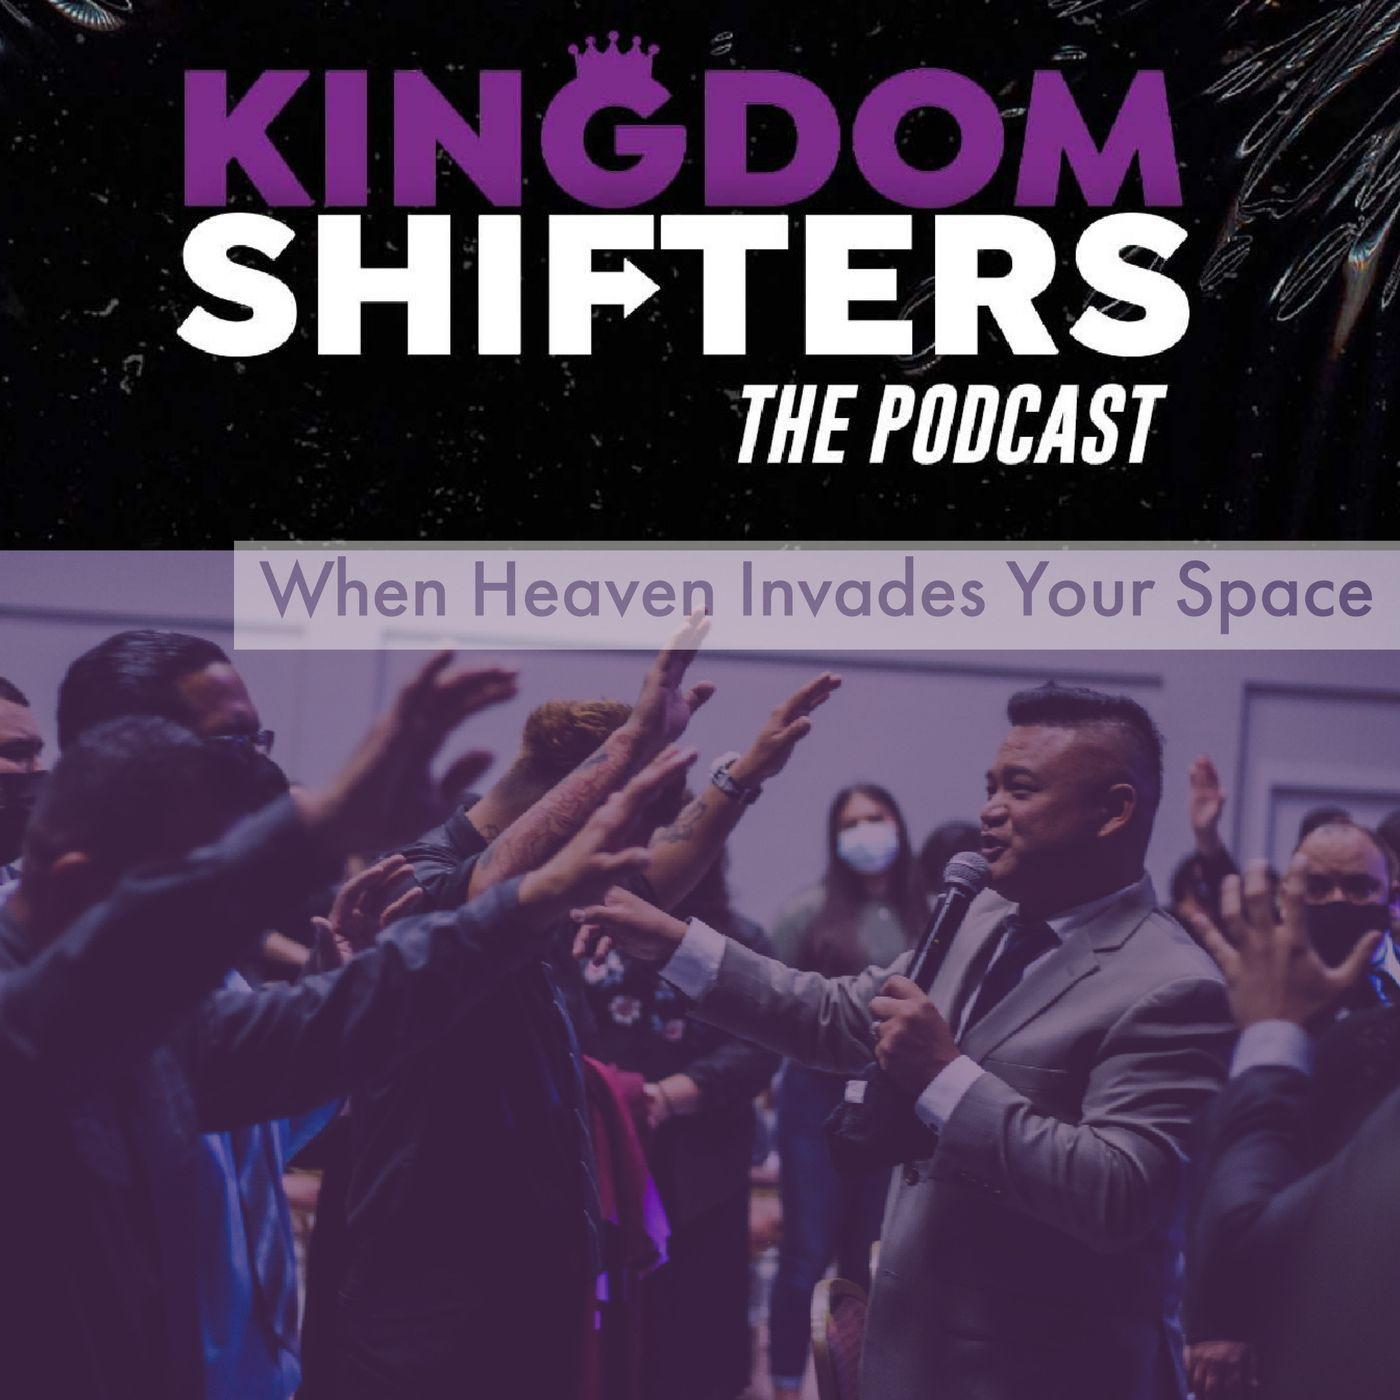 Kingdom Shifters The Podcast Evangelist Tim Rabara - When Heaven Invades Your Space